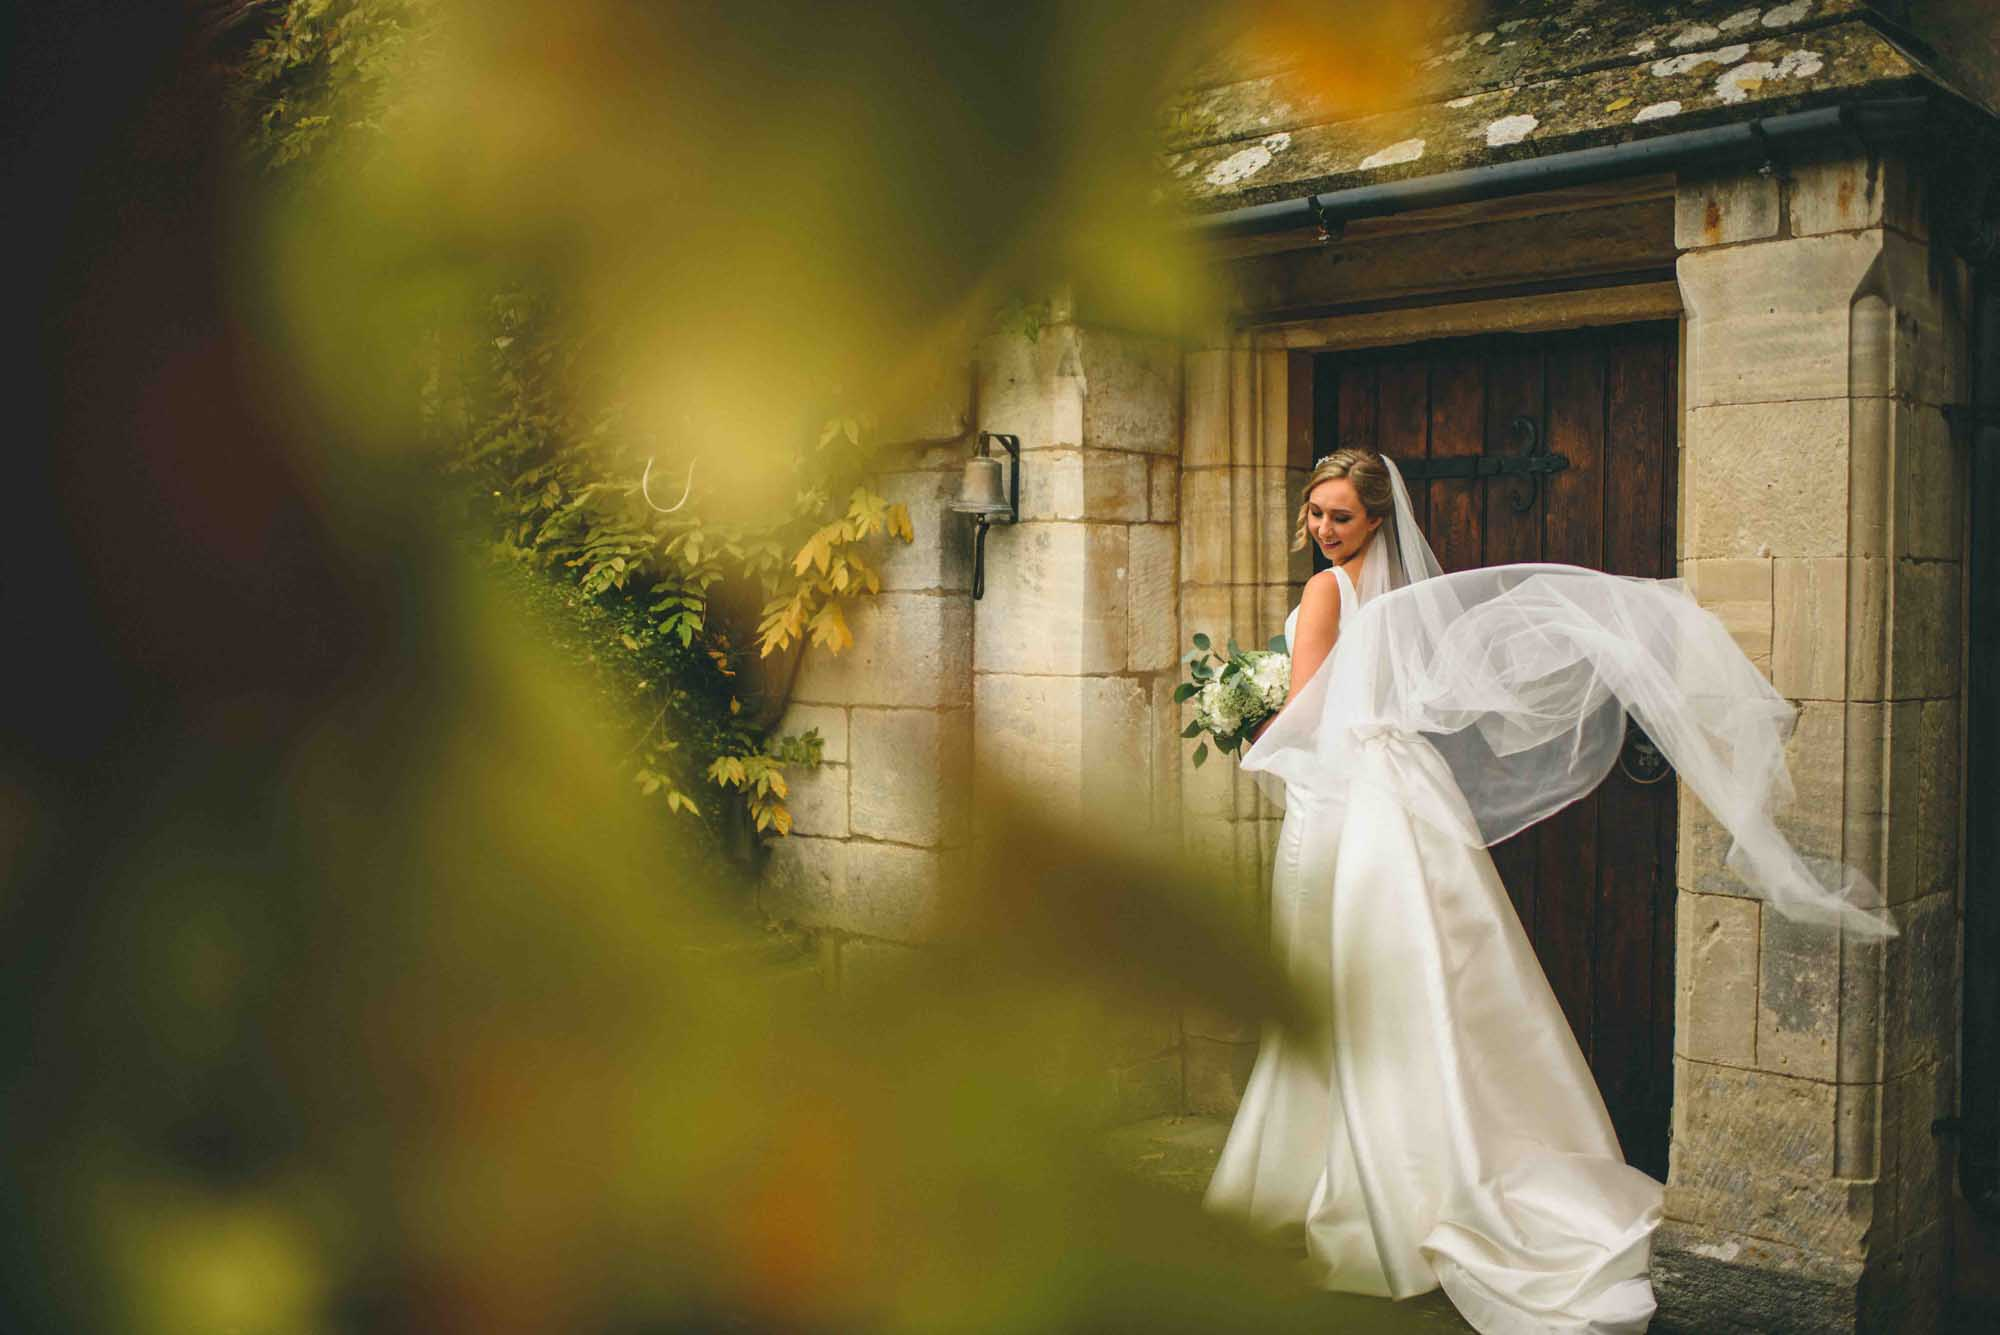 Autumn Bridal Portrait Photo